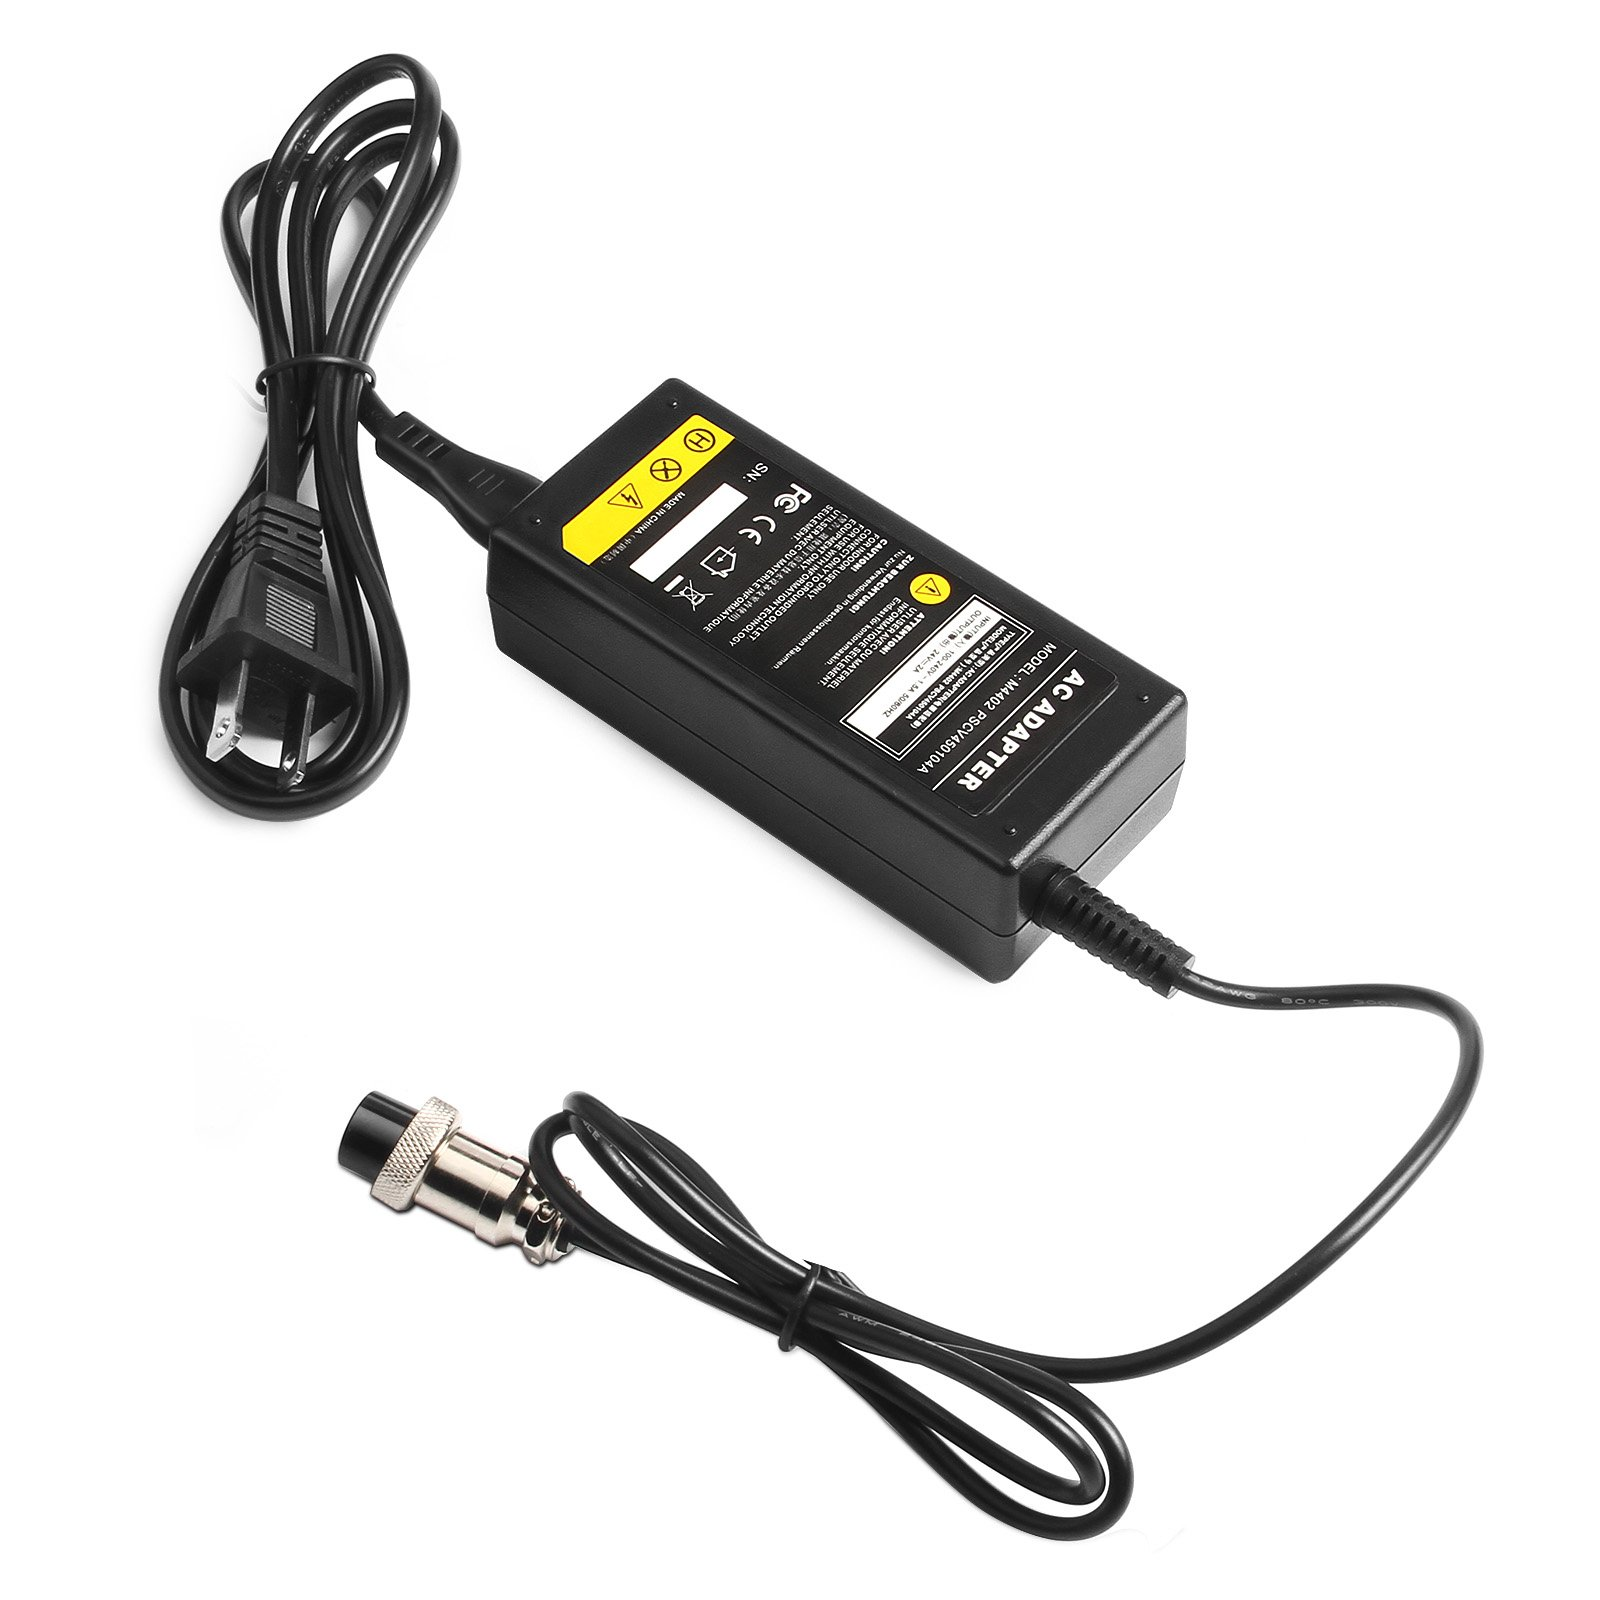 TREE.NB Pack-155 24V 2A Scooter Battery Charger for E-Scooter Freedom 644 Freedom 943 Freedom 961